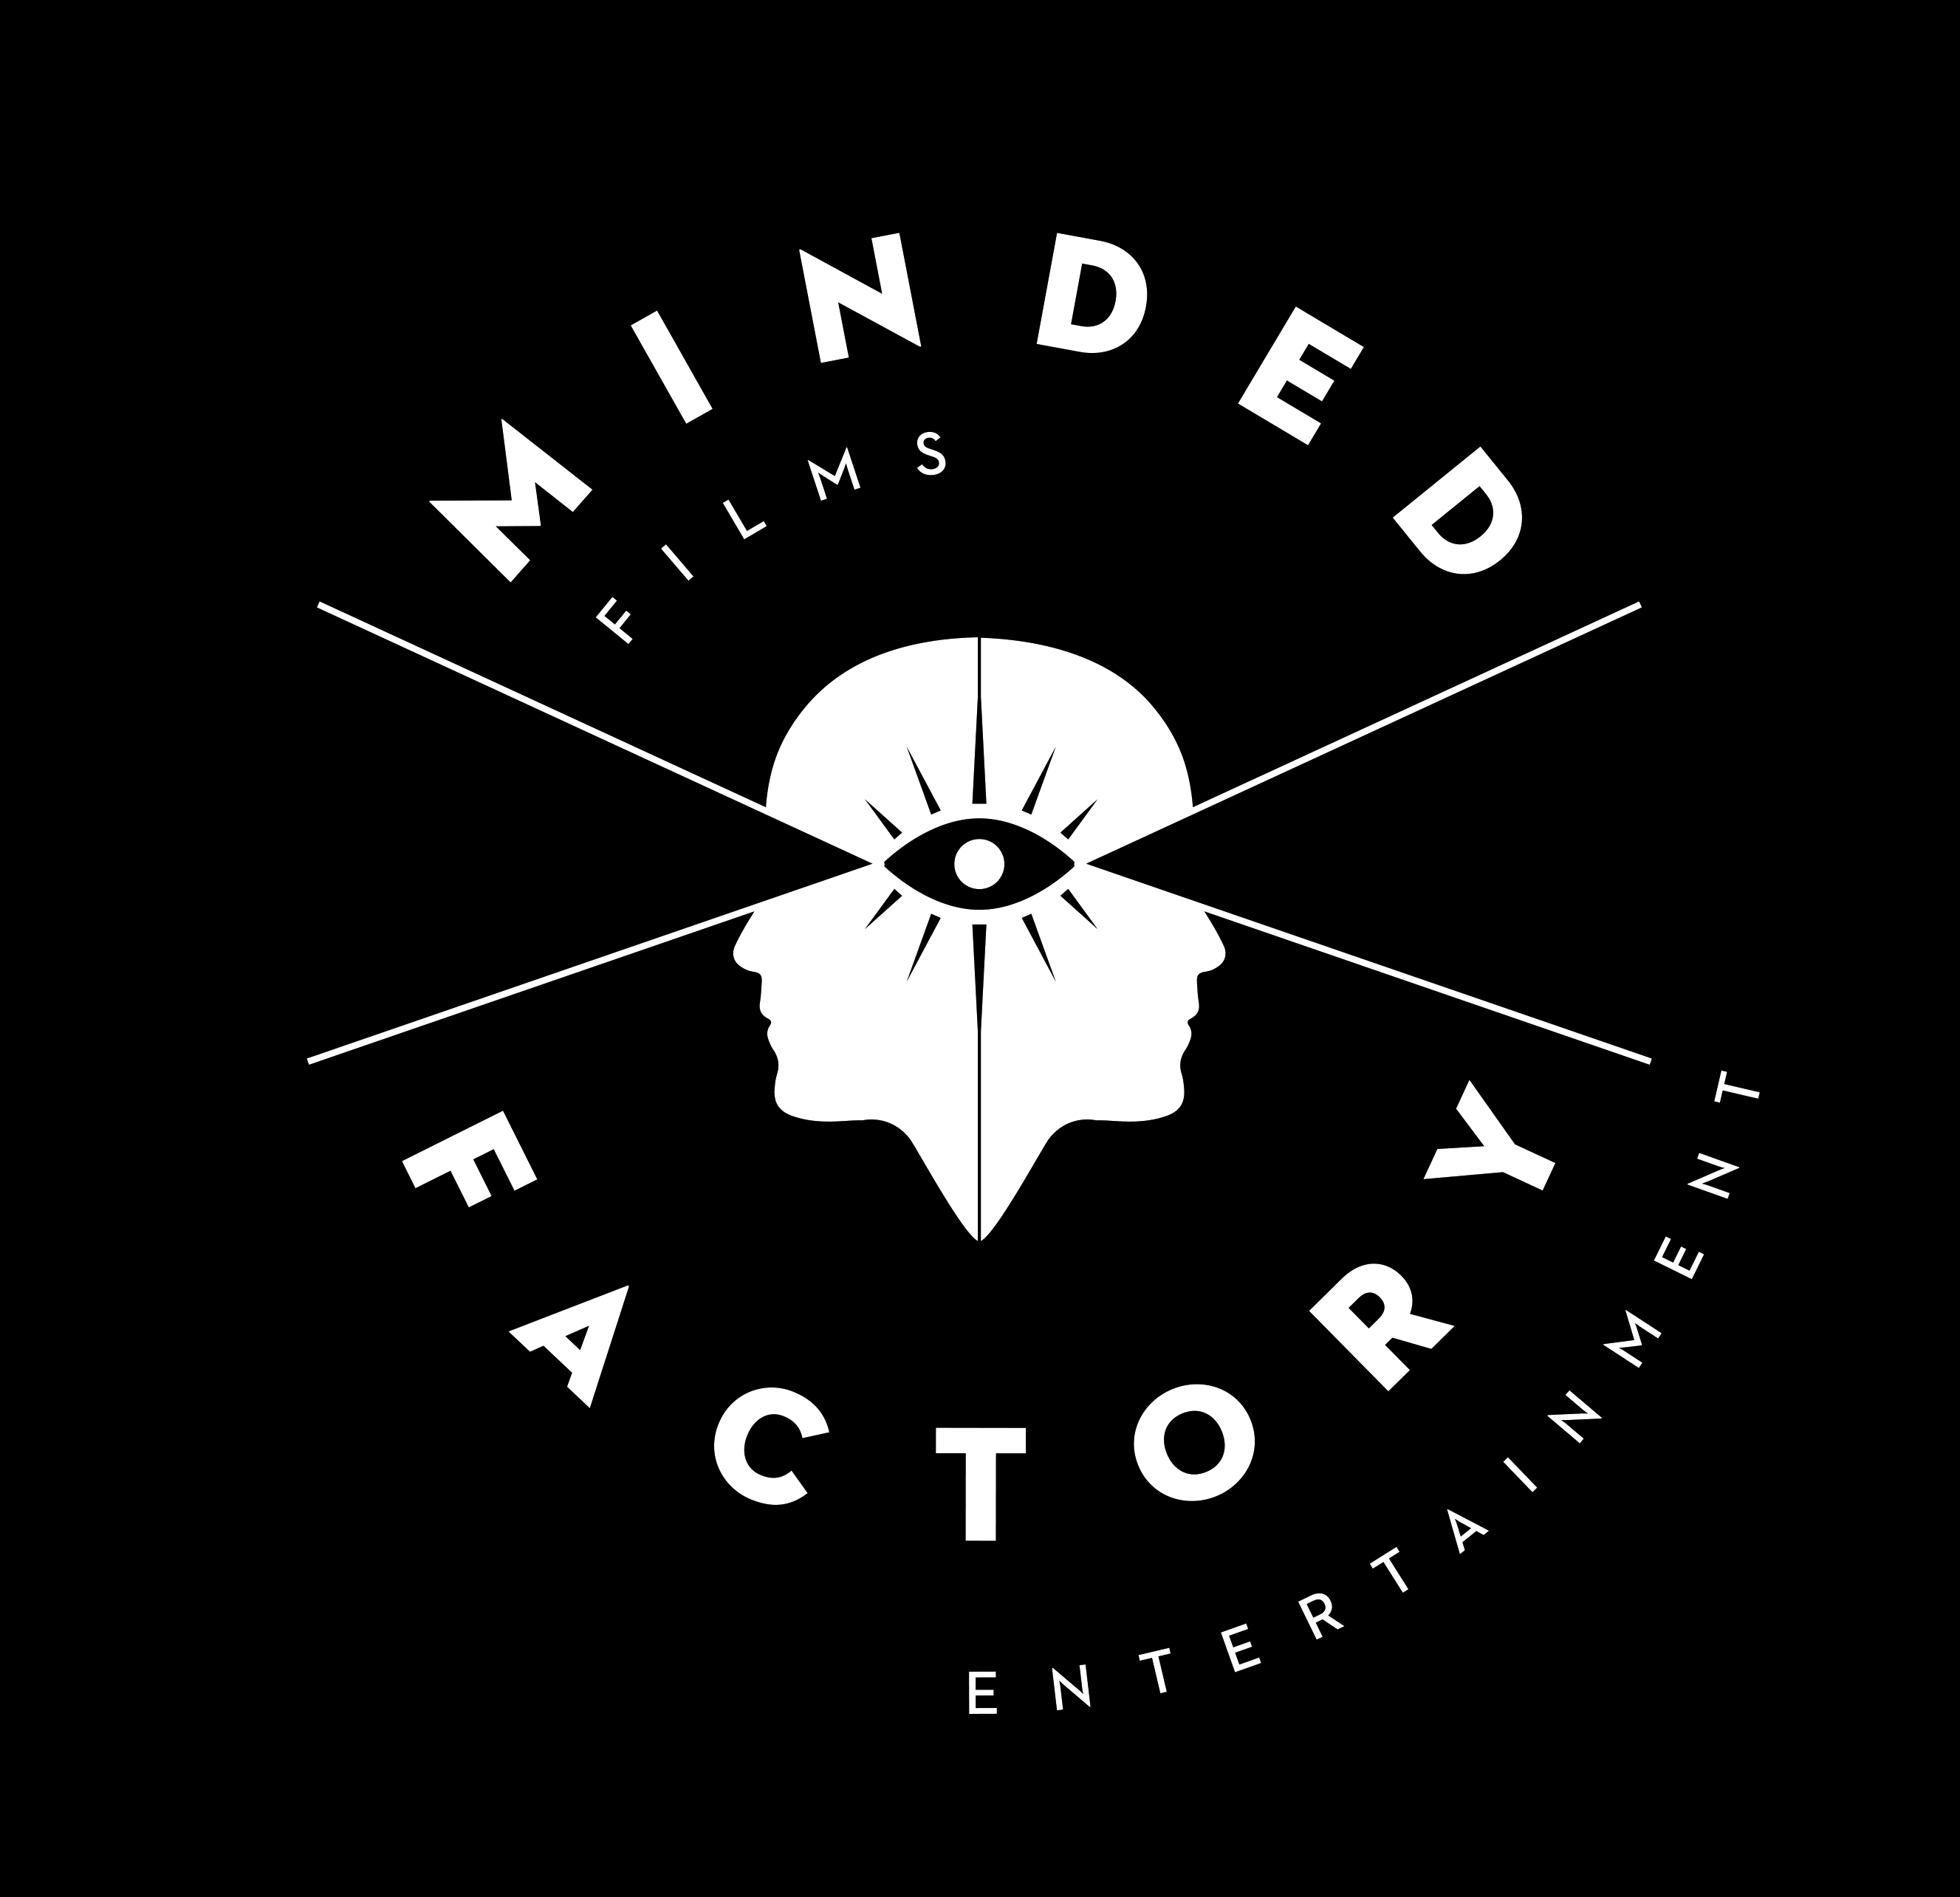 Minded Factory